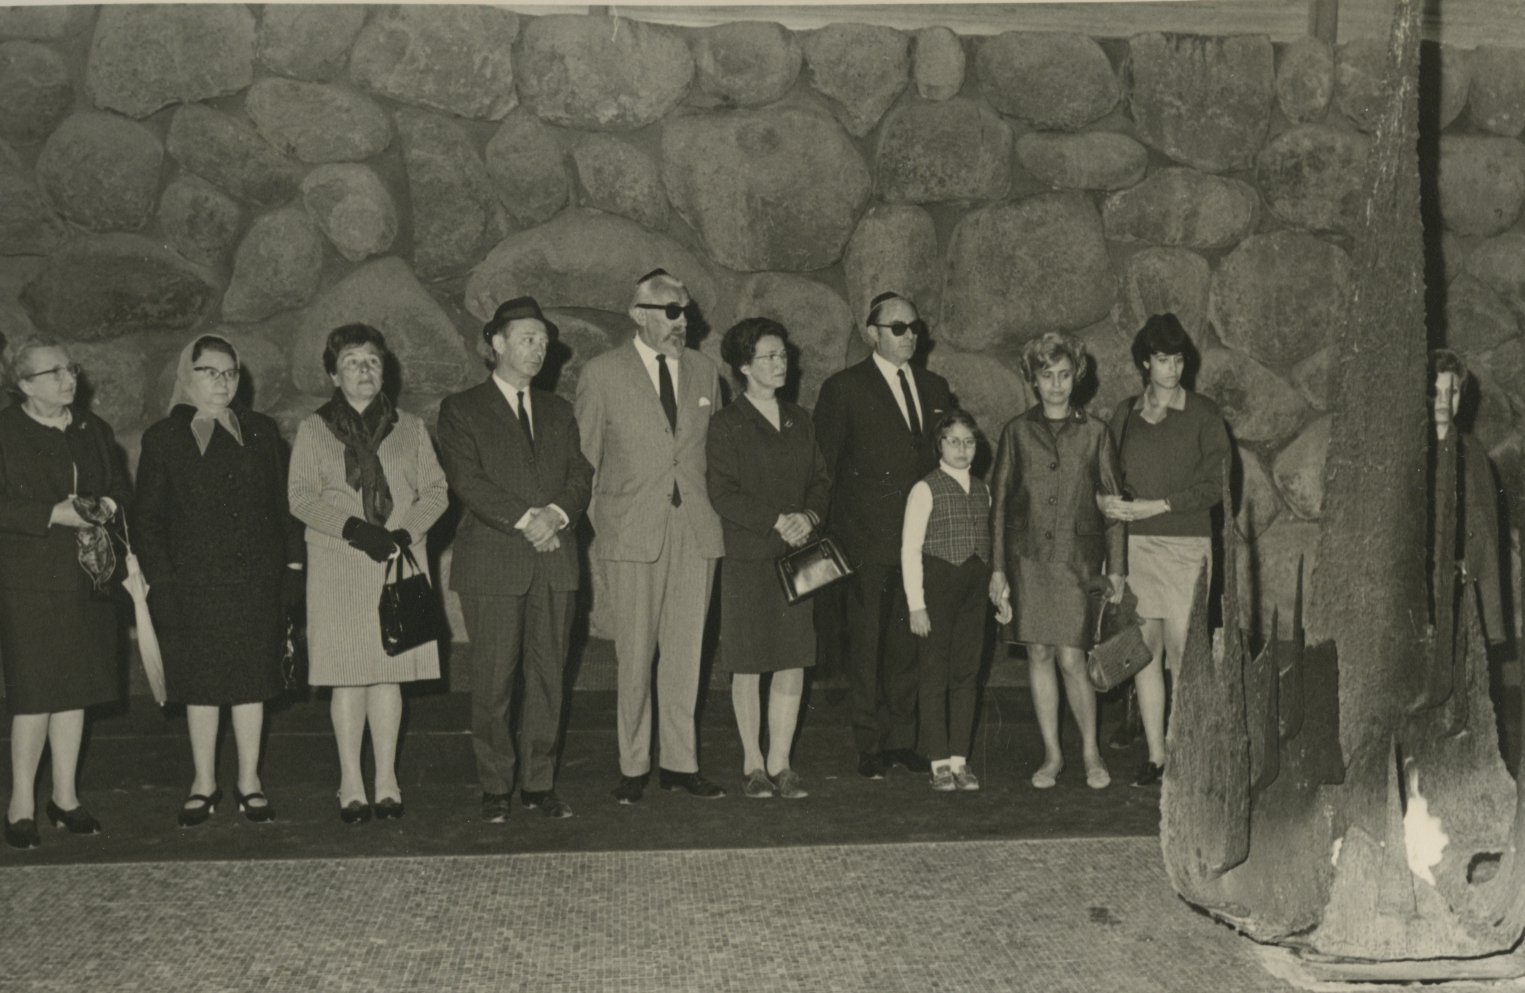 Ceremony in Honor of Eppo and Janke Kooy in the Hall of Remembrance. Yad Vashem, 18.04.1969